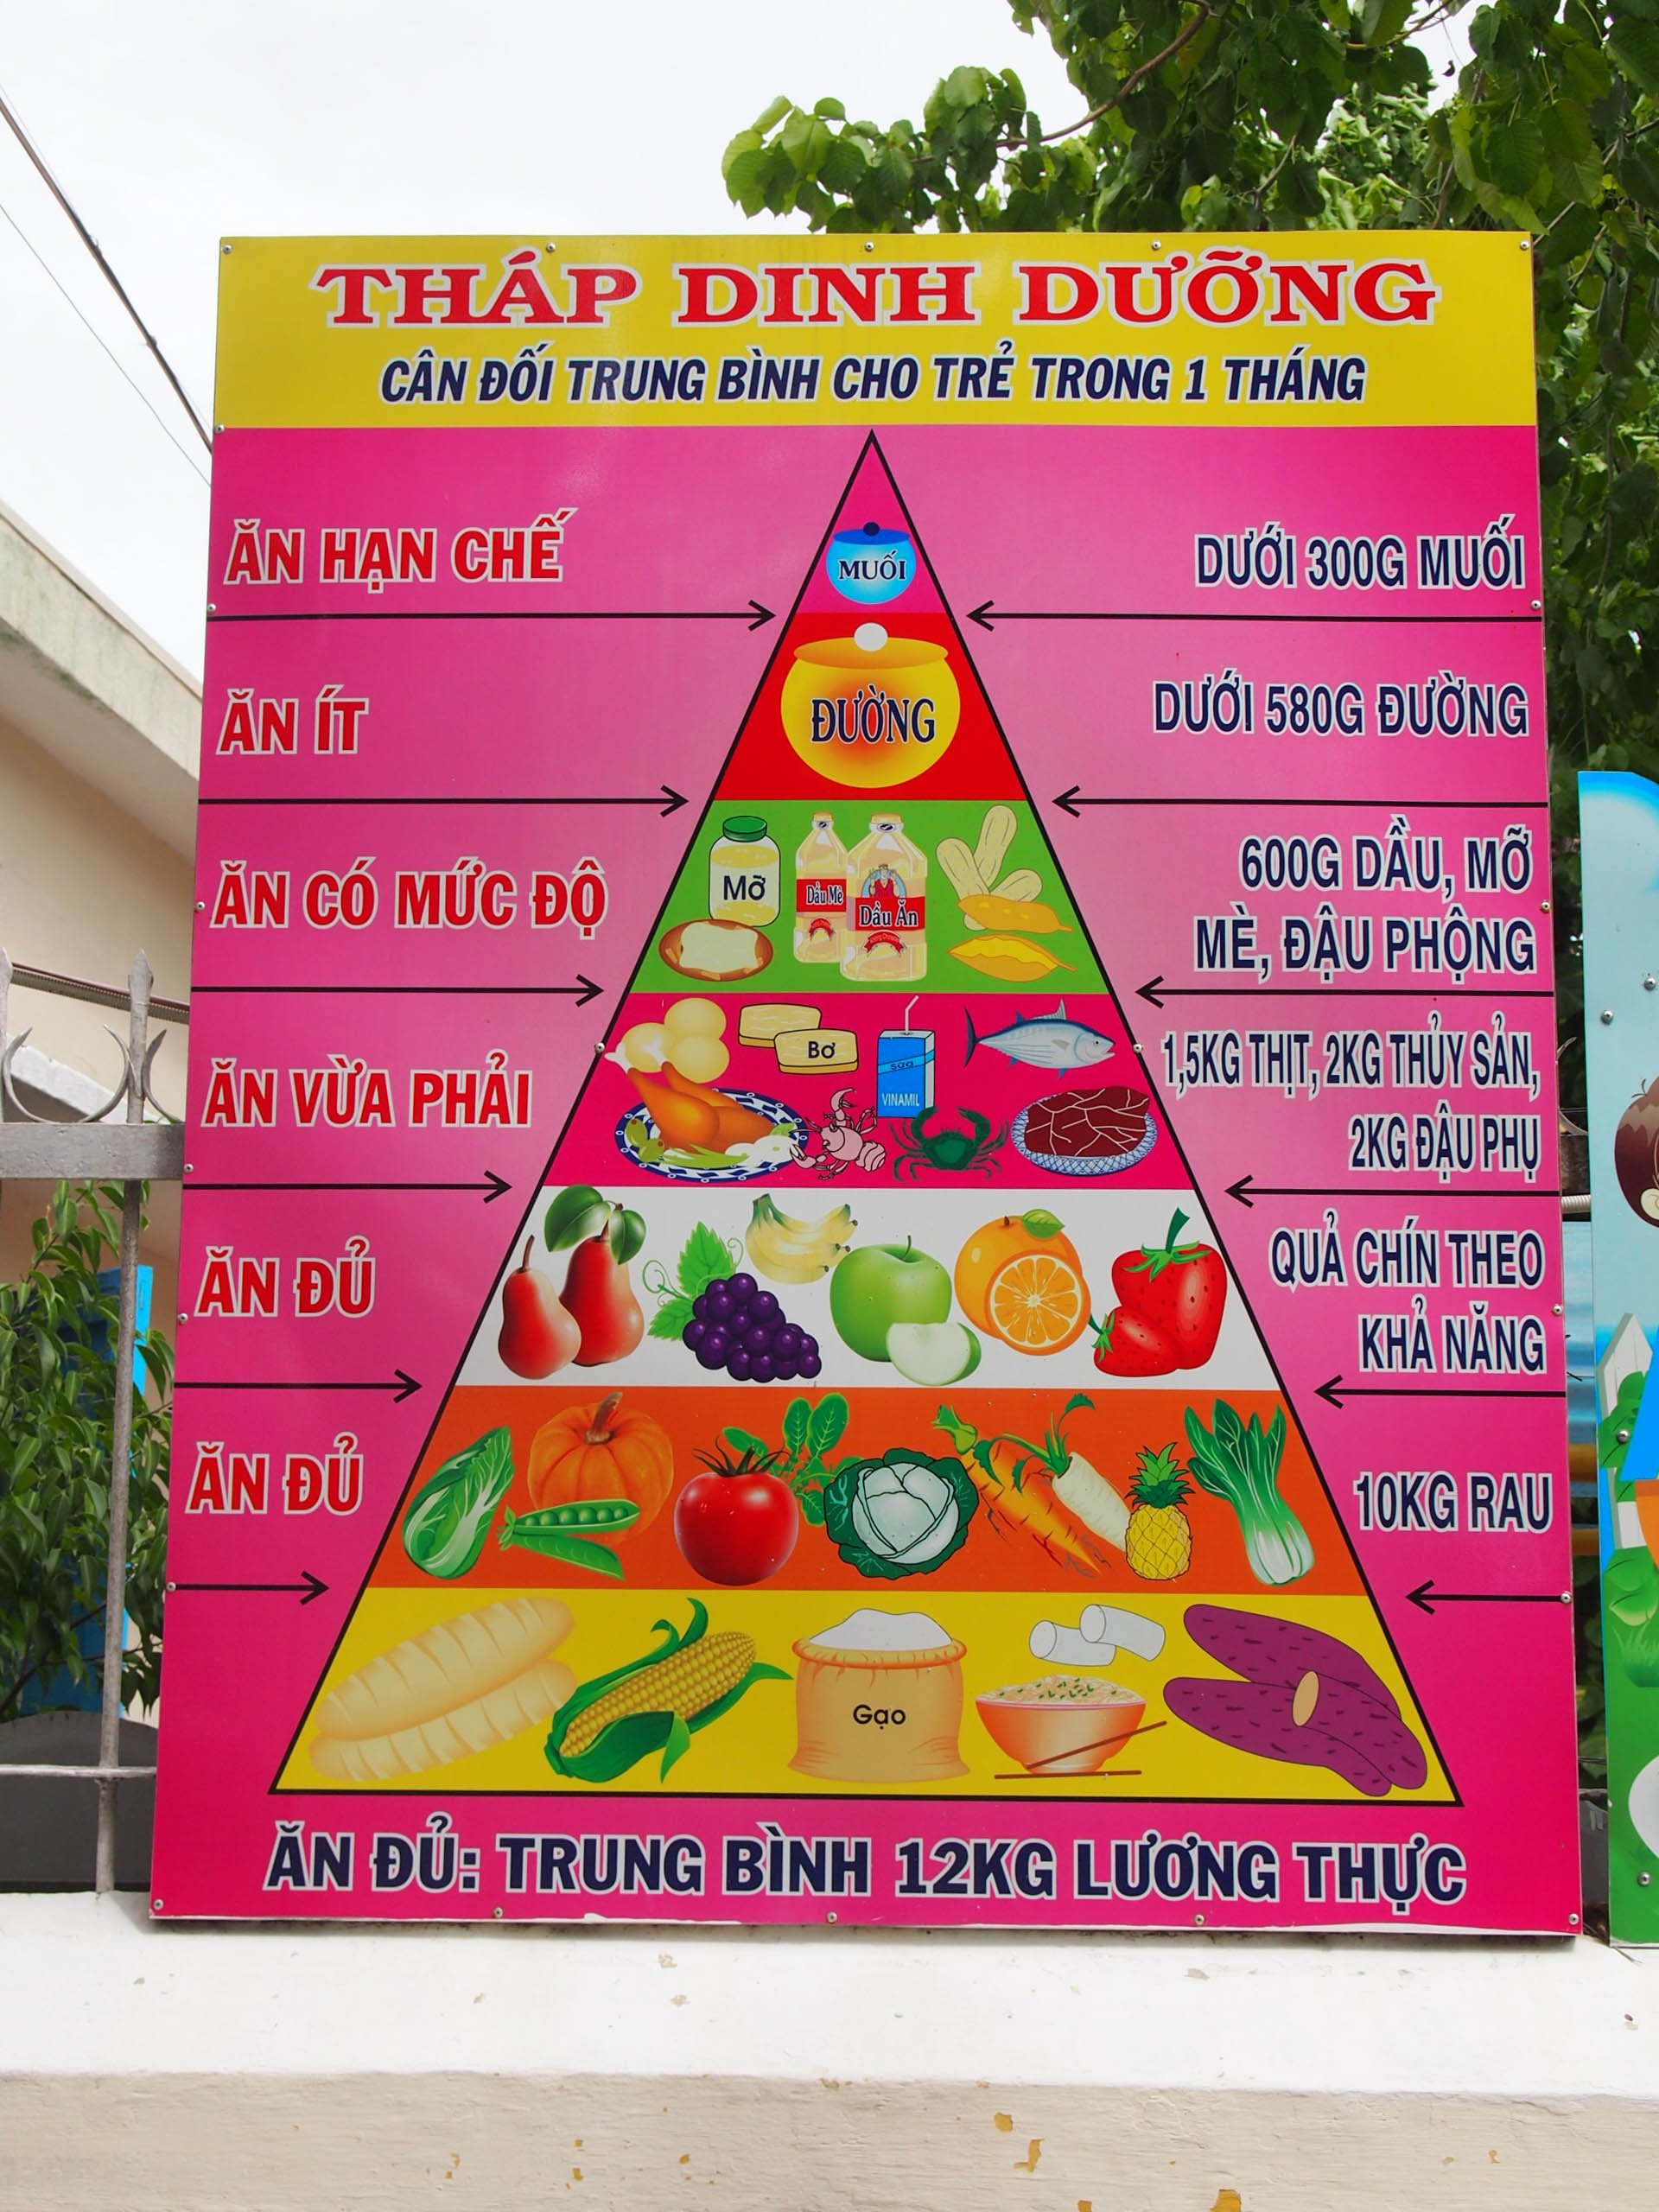 Found this hanging across the street at lunch. I guess VIetnam hasn't upgraded to the plate!